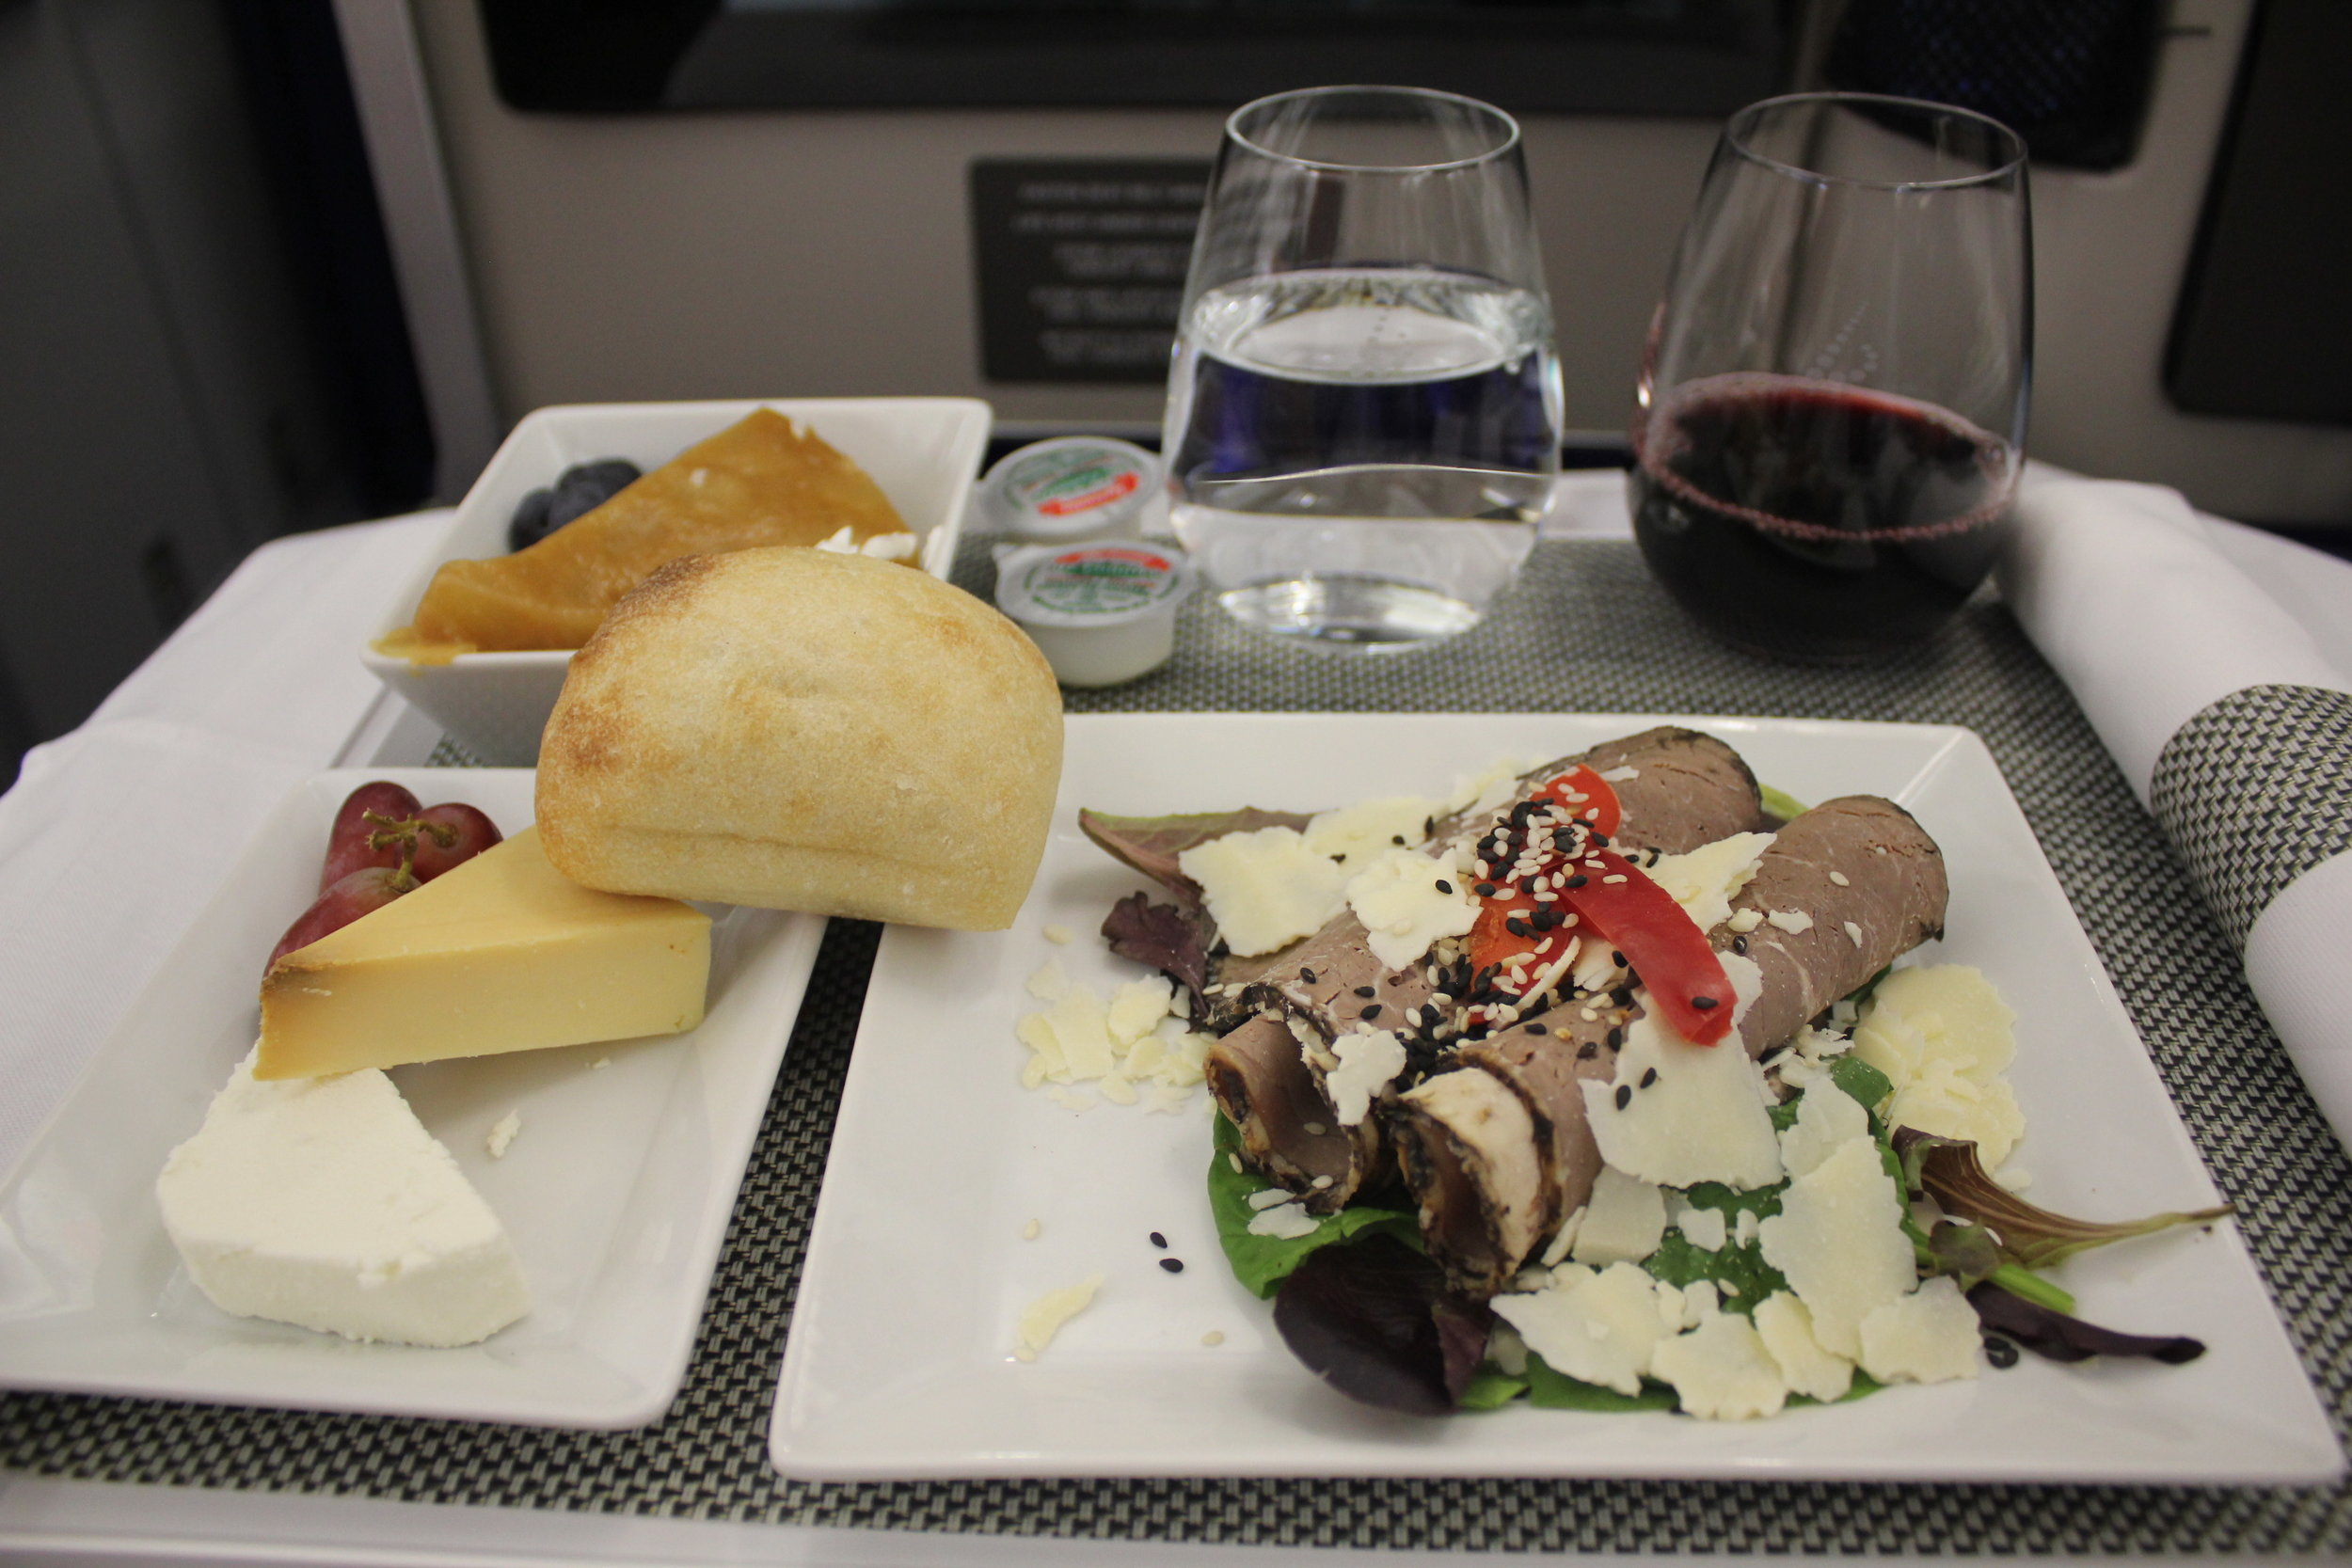 Brussels Airlines business class – Beef carpaccio